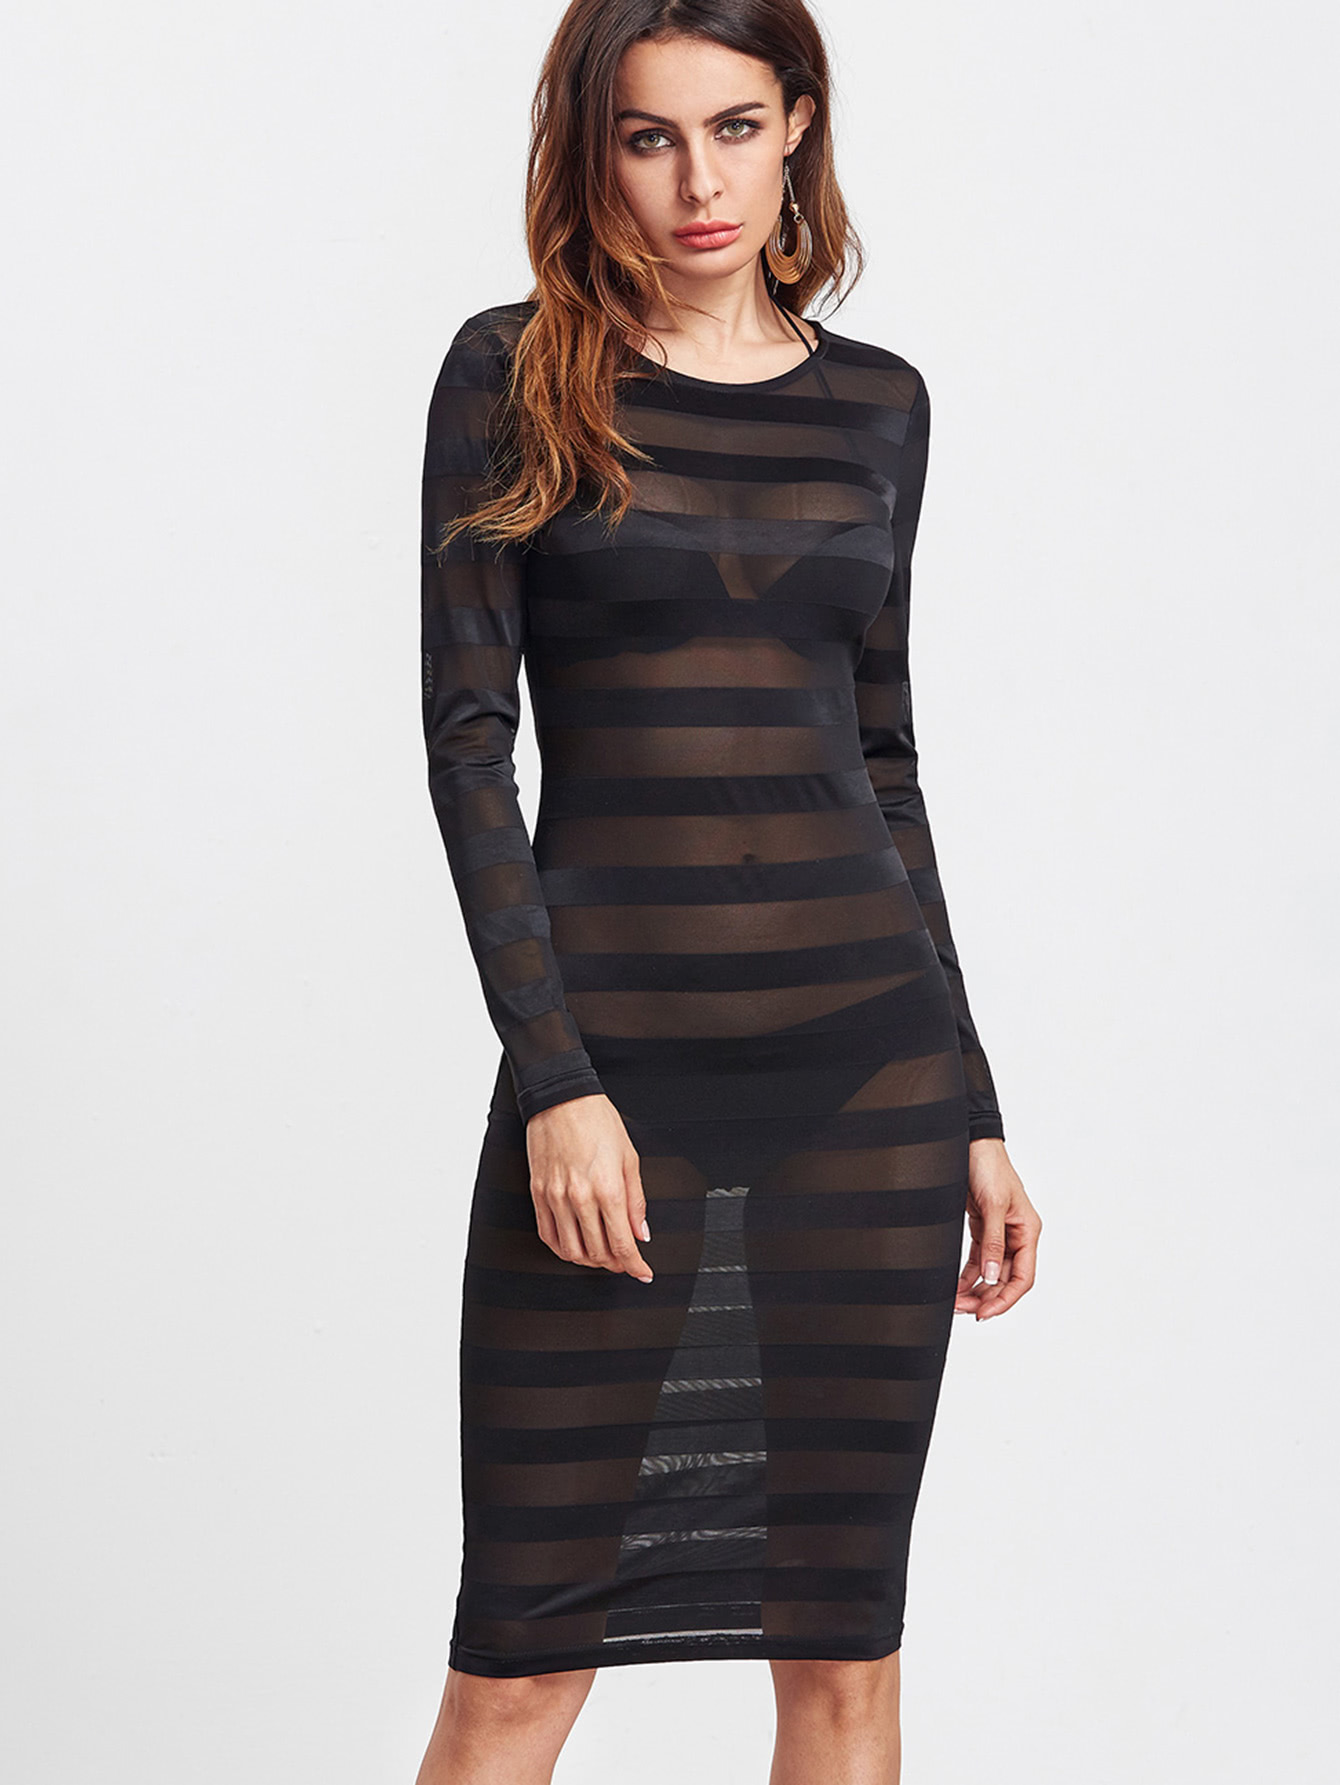 Wide Striped Mesh See-Through Dress see through mesh patchwork bodycon dress